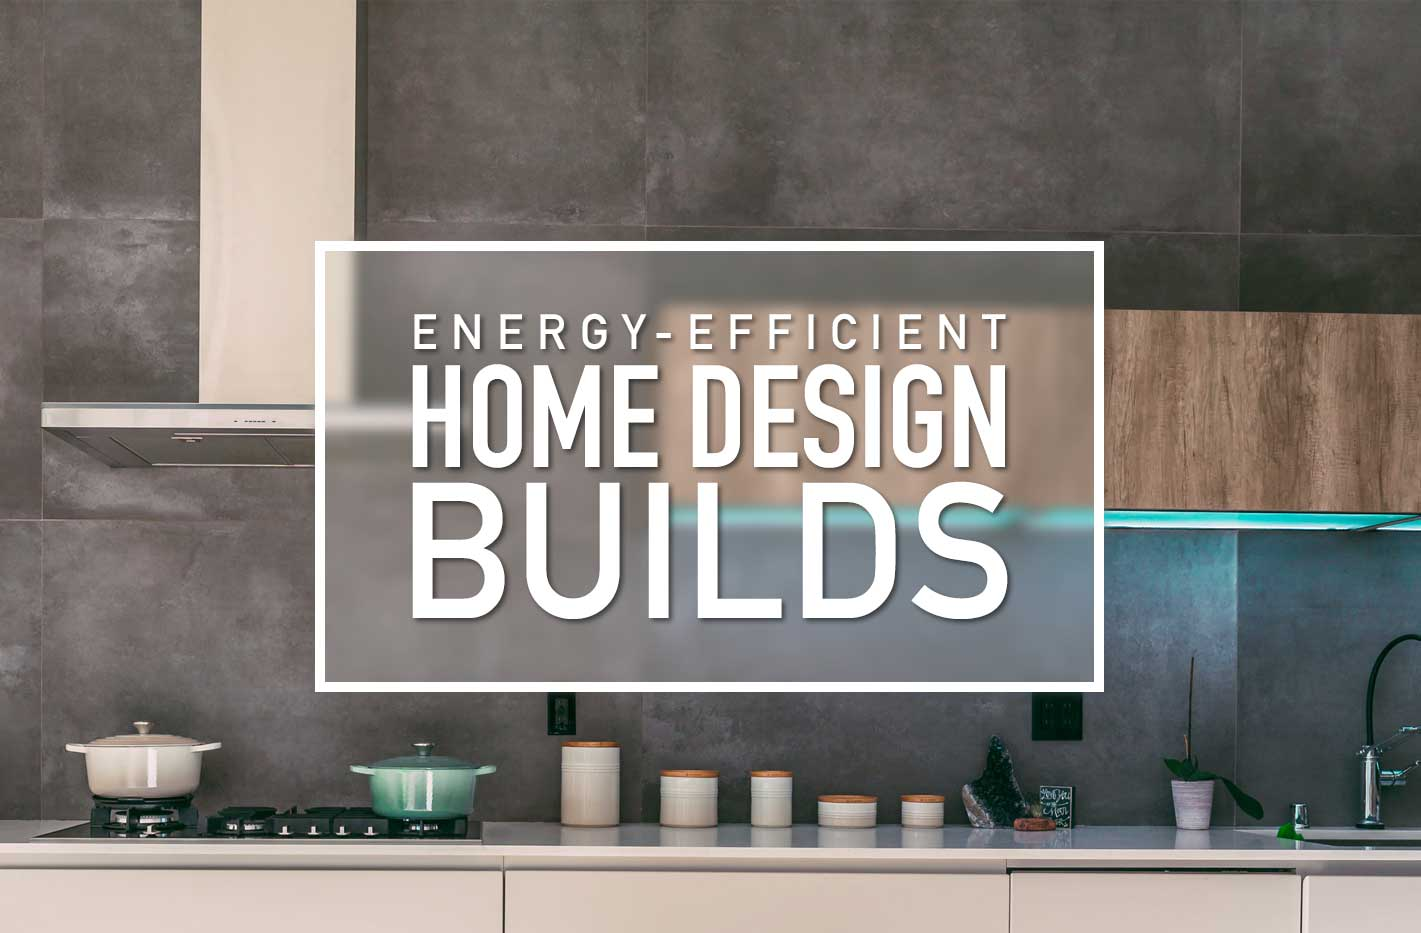 Energy-Efficient Home Design Builds